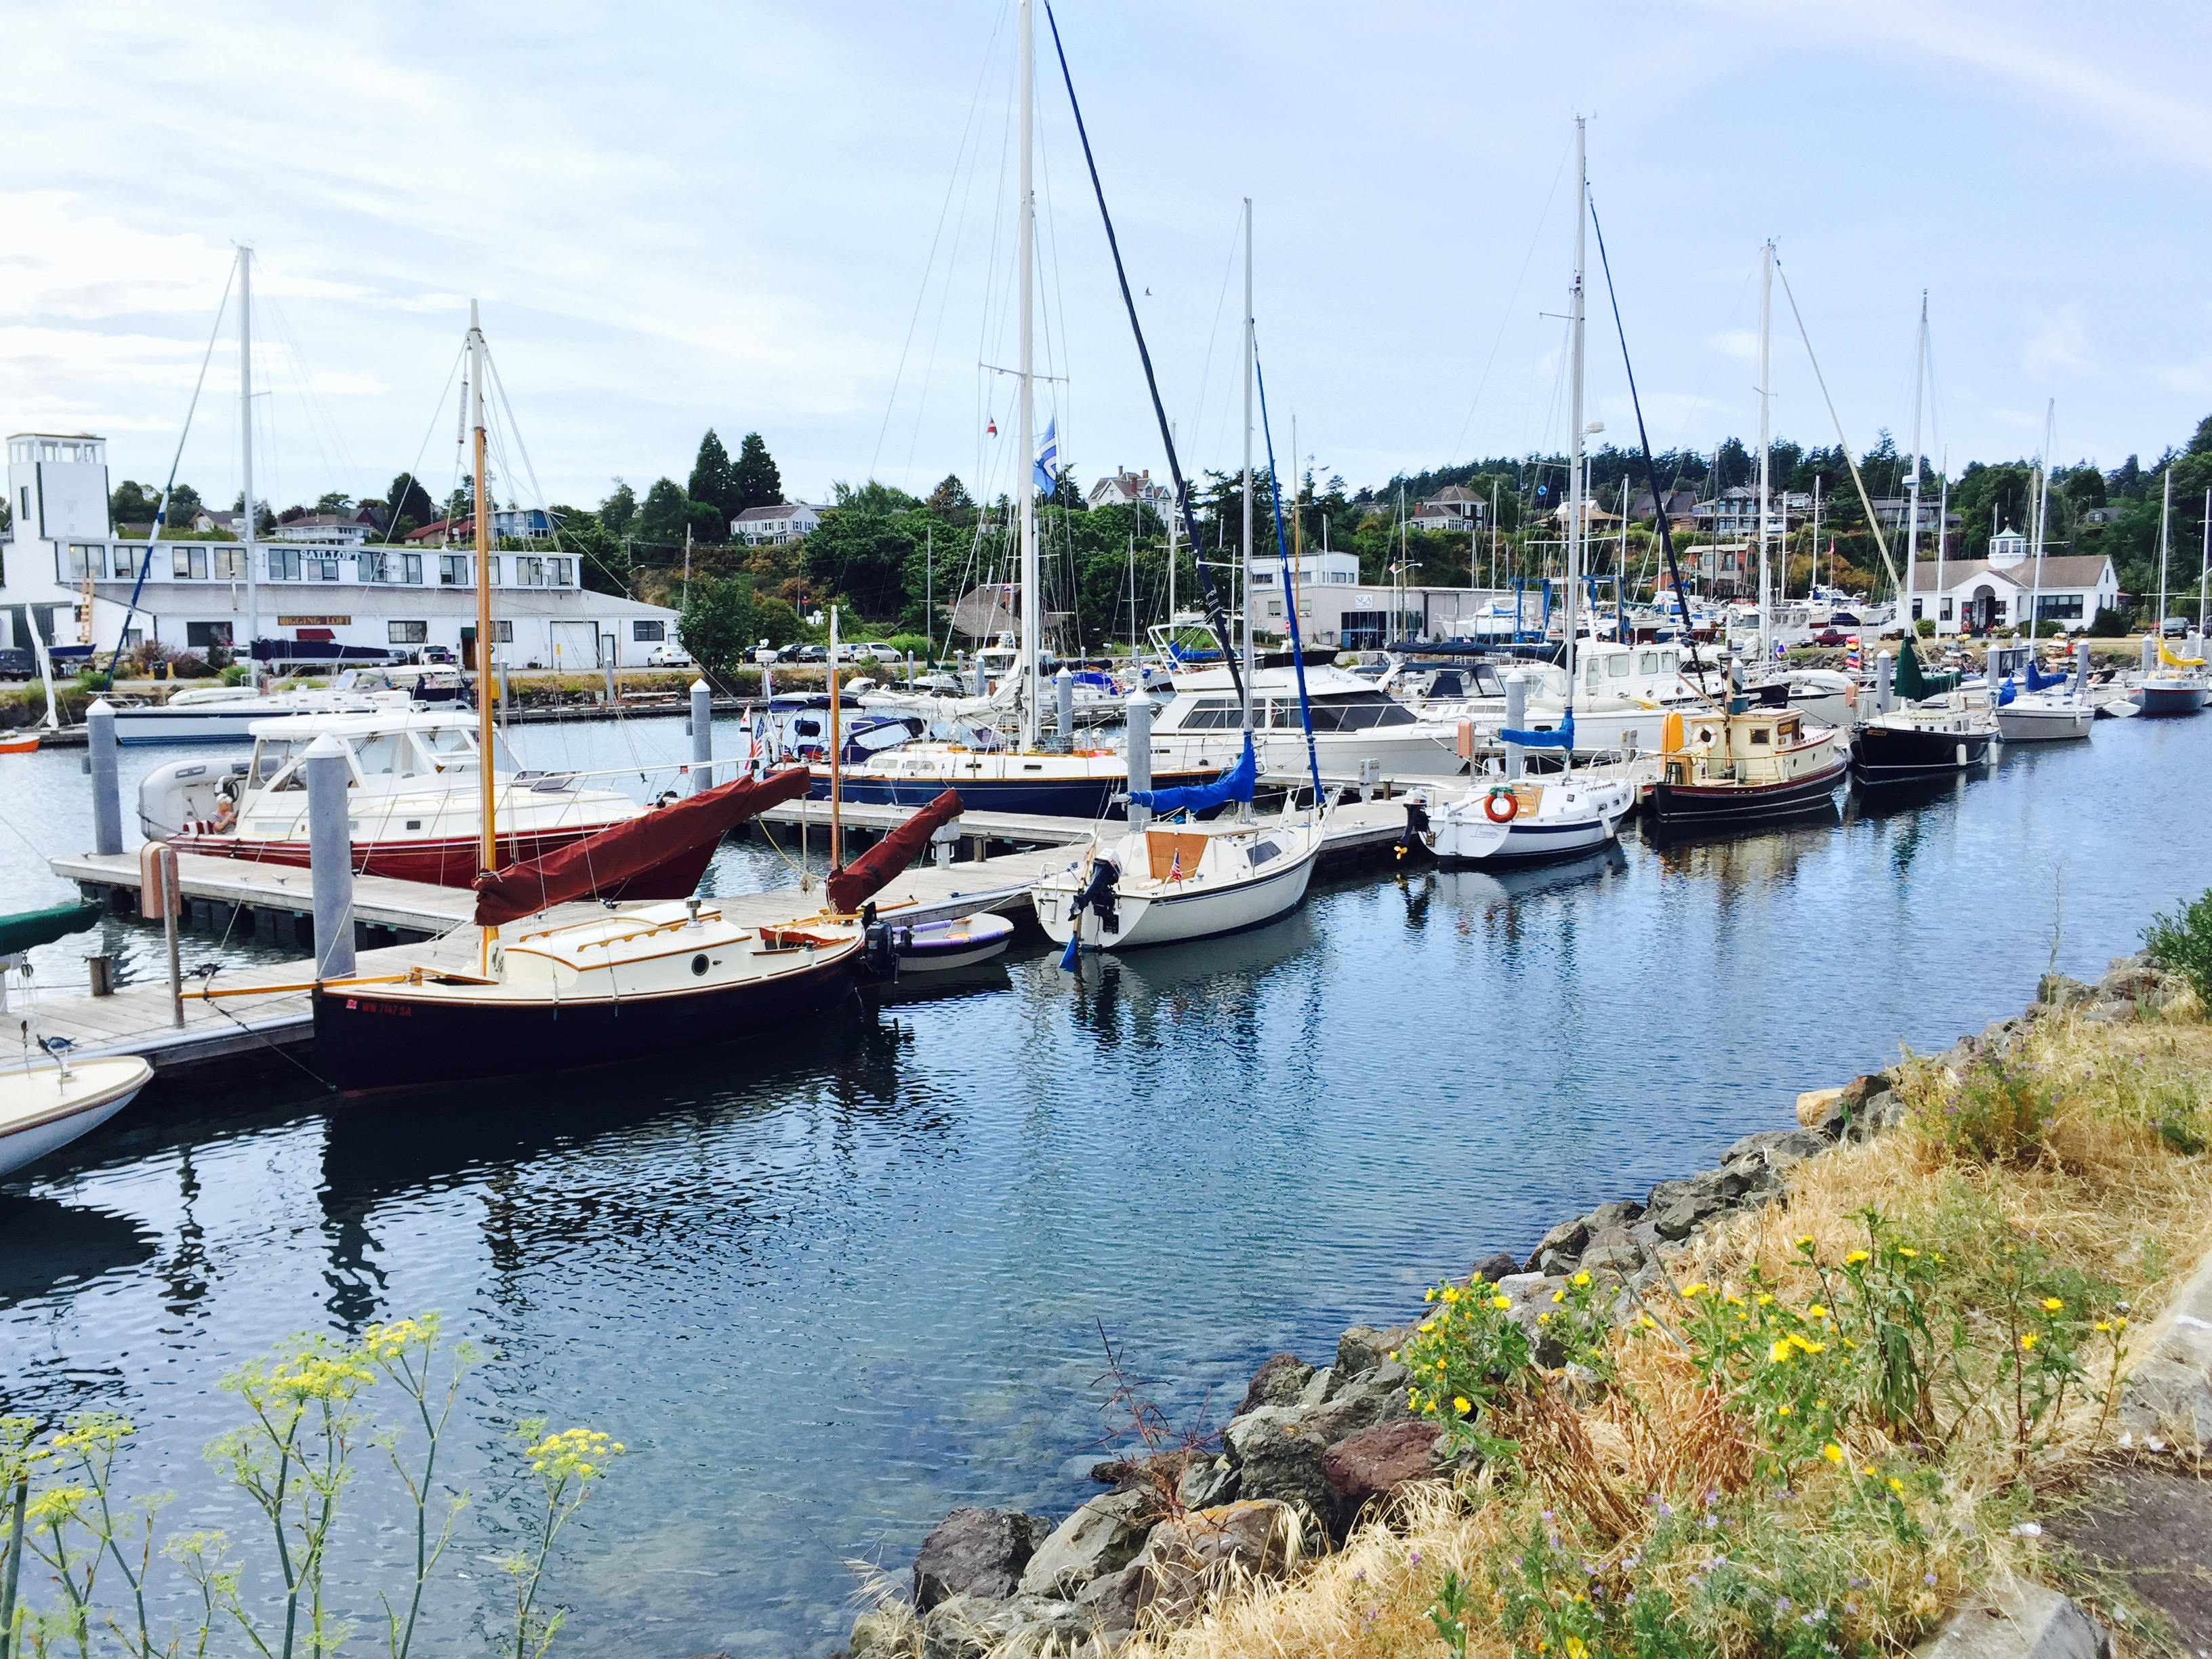 Some boats at port Townsend